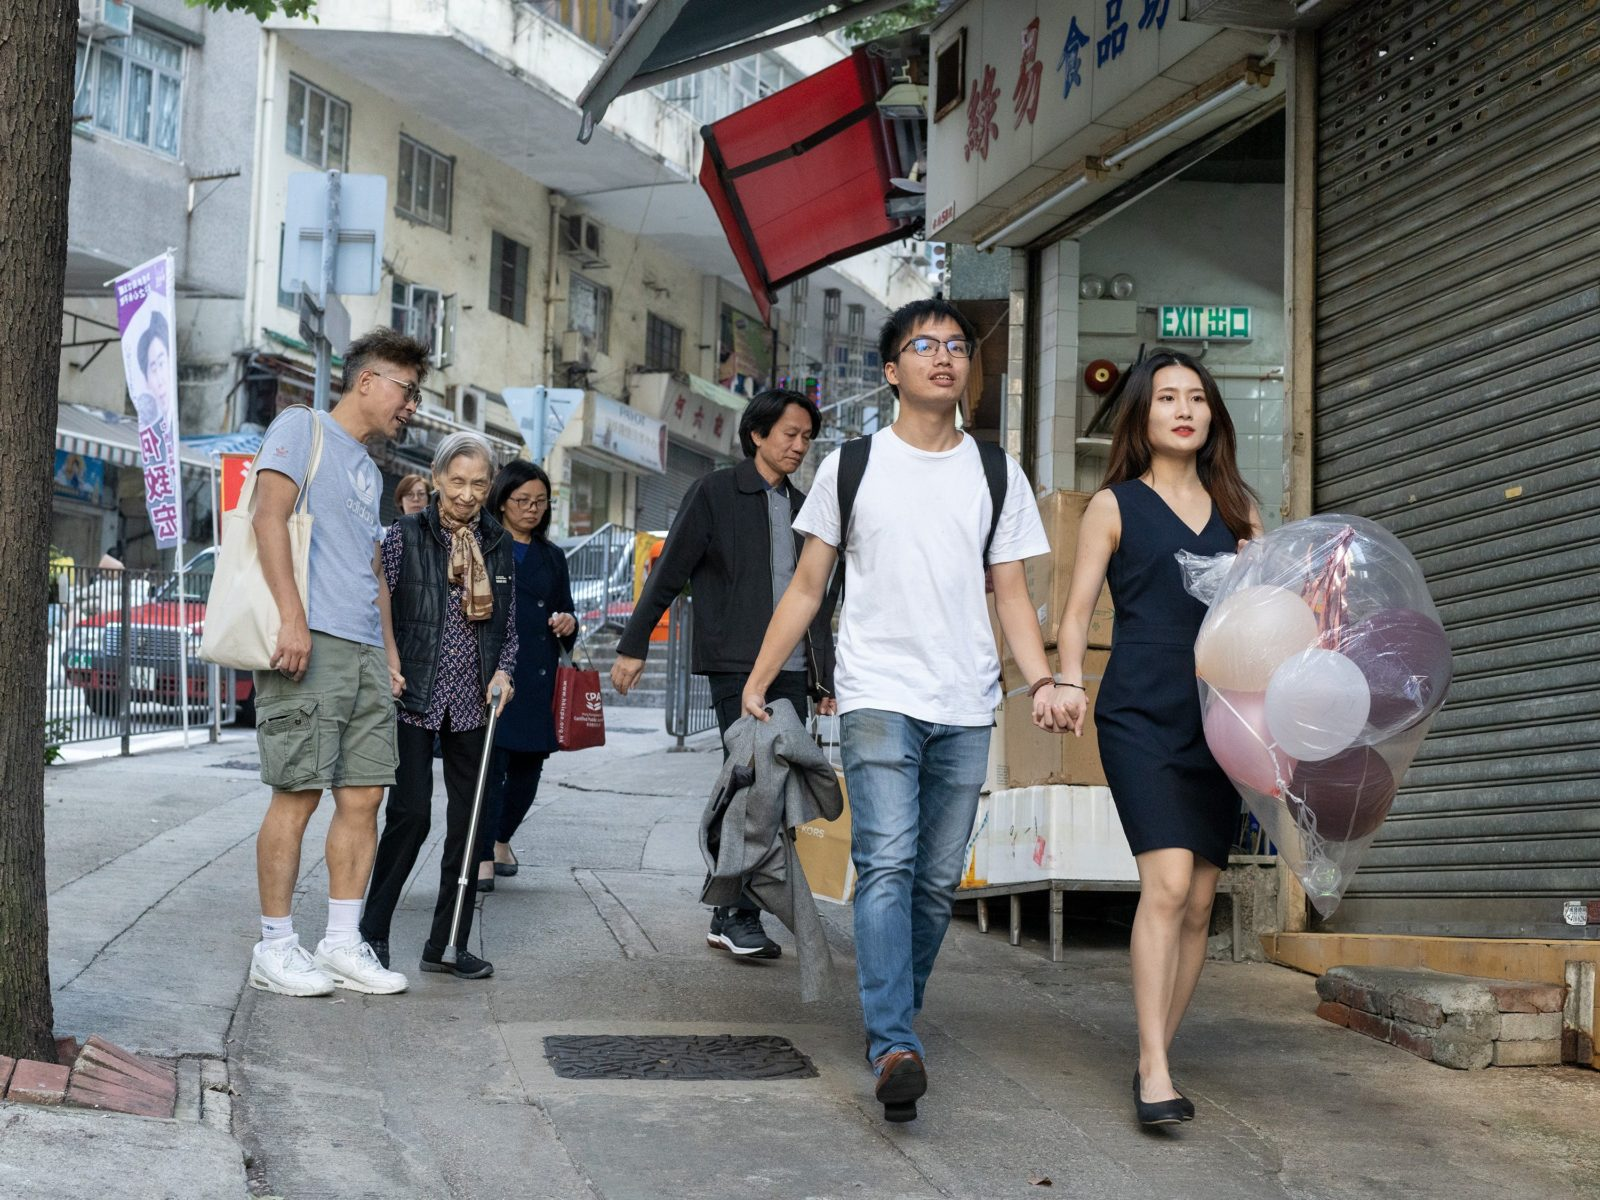 Colour photo of couple in street